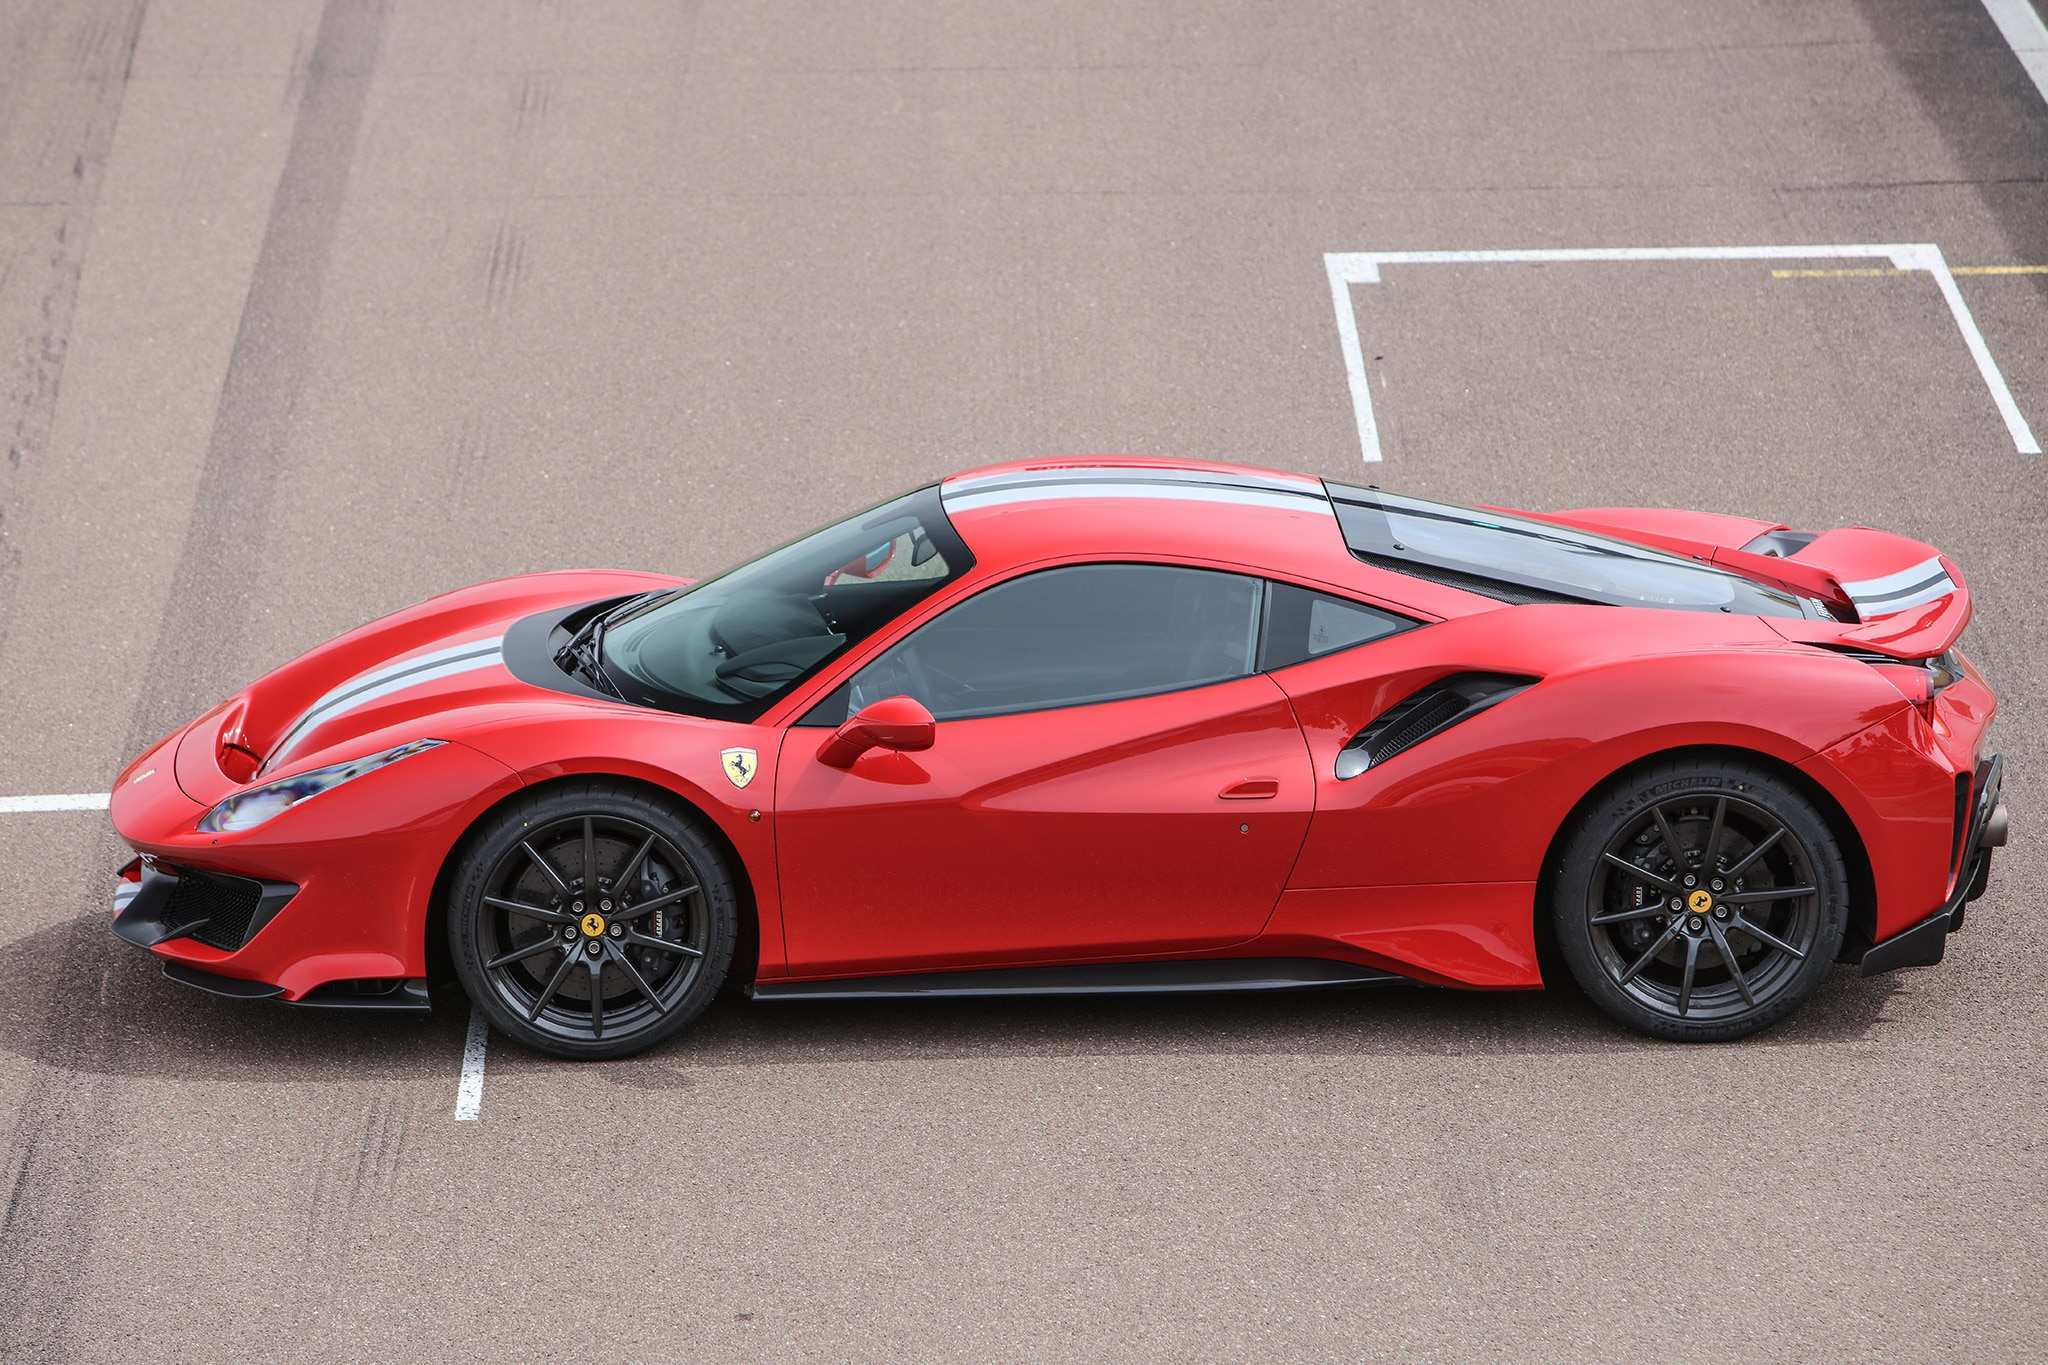 77 All New 2019 Ferrari 488 Pista 2 Specs by 2019 Ferrari 488 Pista 2